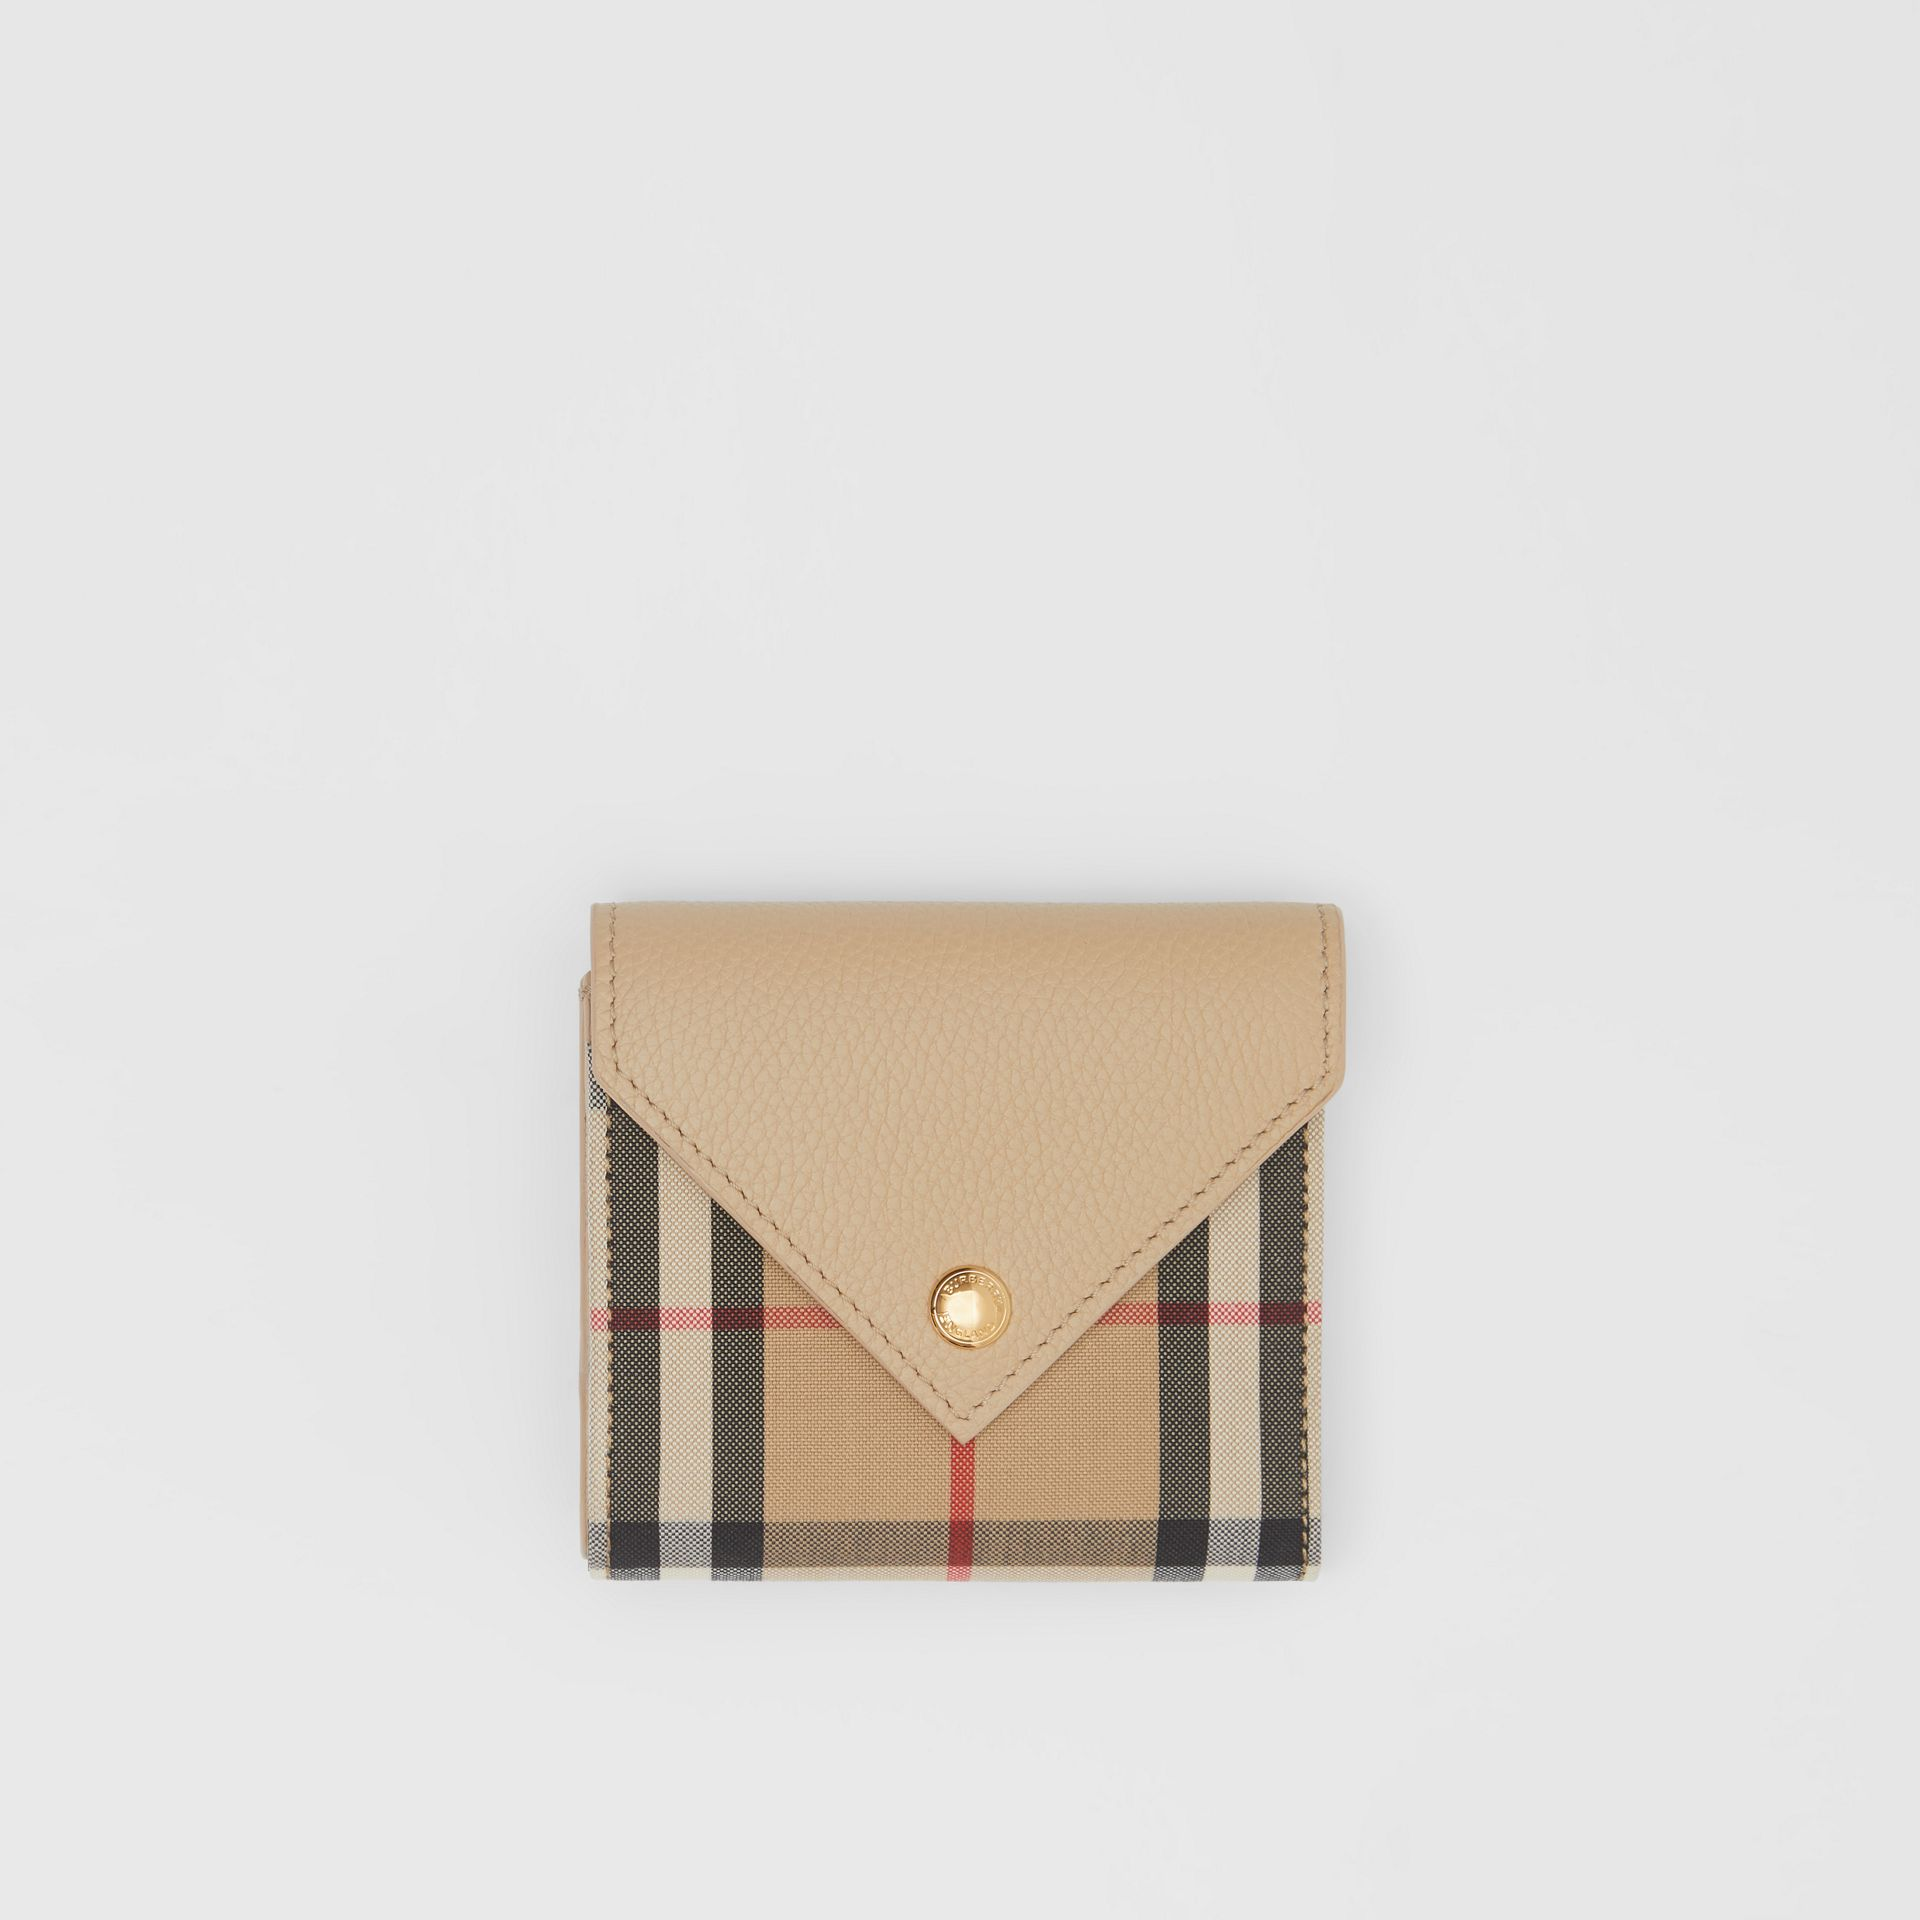 Vintage Check and Grainy Leather Folding Wallet in Light Beige - Women | Burberry Hong Kong S.A.R - gallery image 0